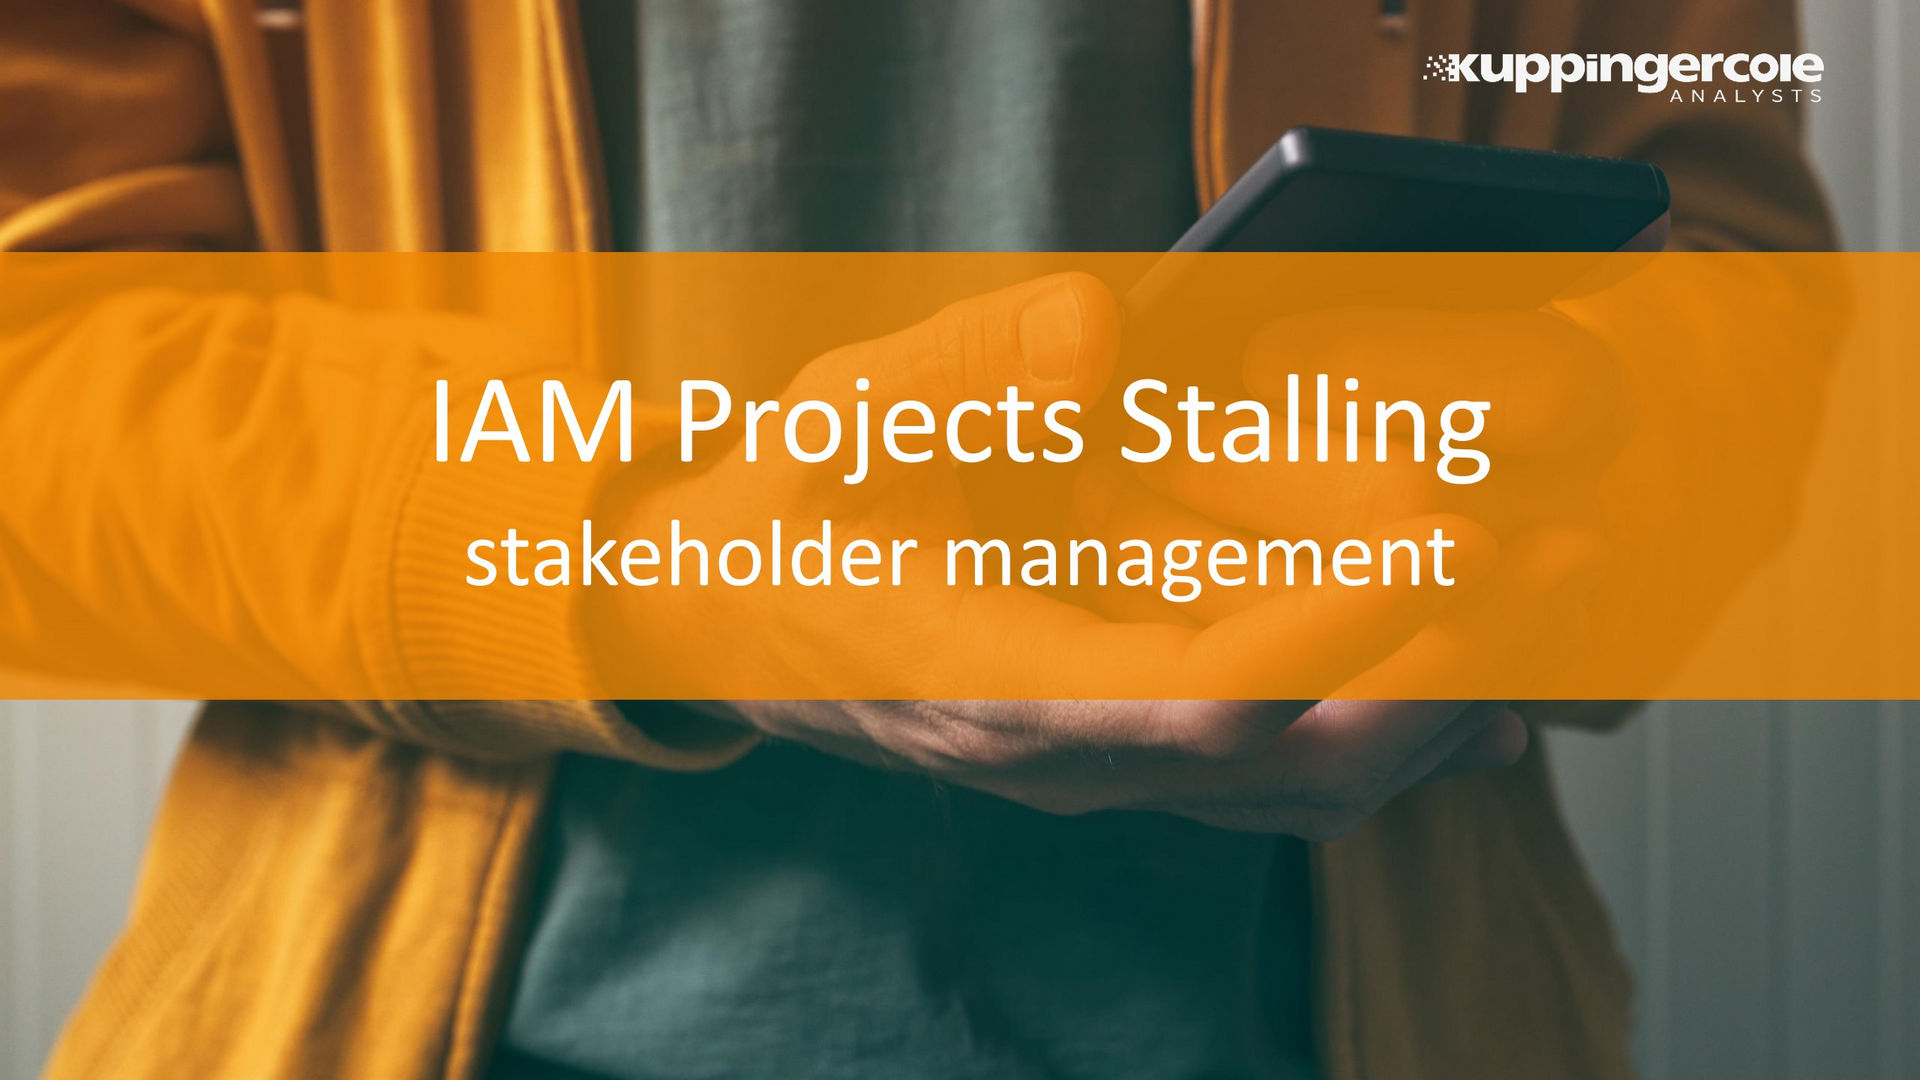 IAM Projects Stalling - Stakeholder Management